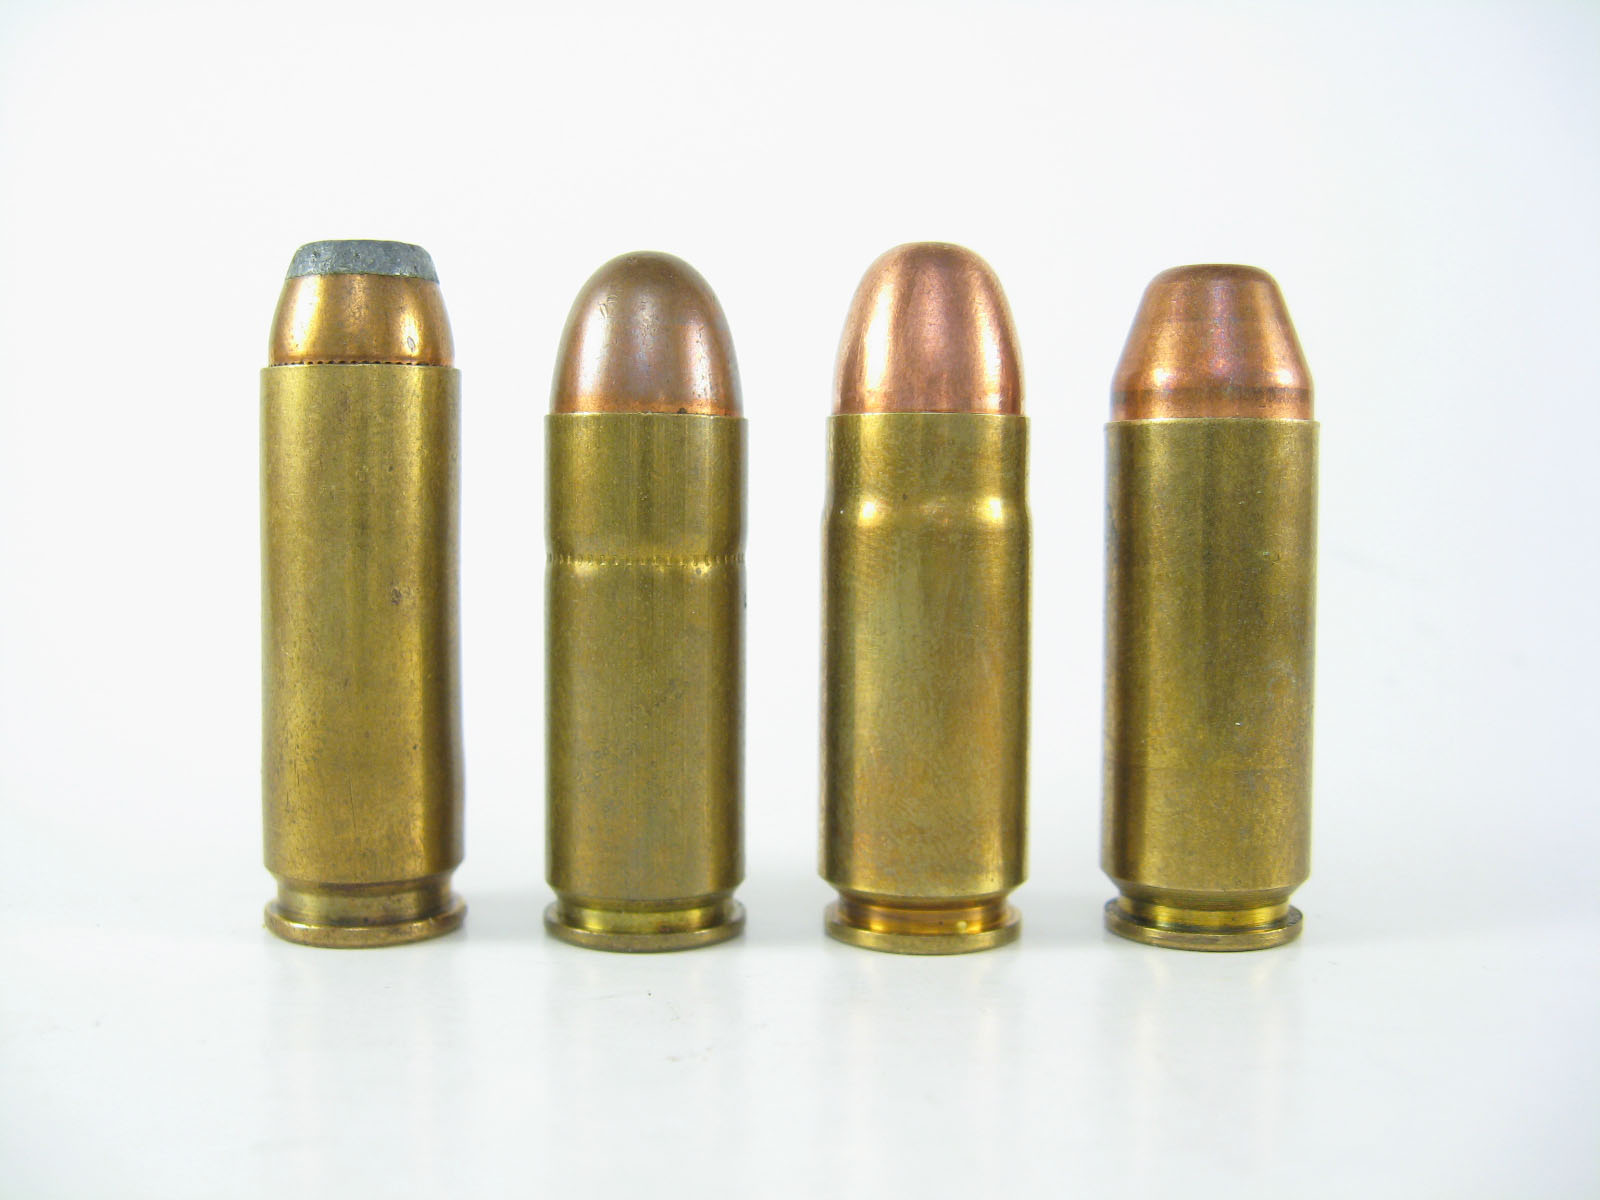 Some of the cartridges for which the Wildey pistol is chambered. From left to right 44 Auto Mag, 45 Winchester Magnum, 45 Wildey Magnum, 475 Wildey Magnum. (Picture courtesy Wikipedia).